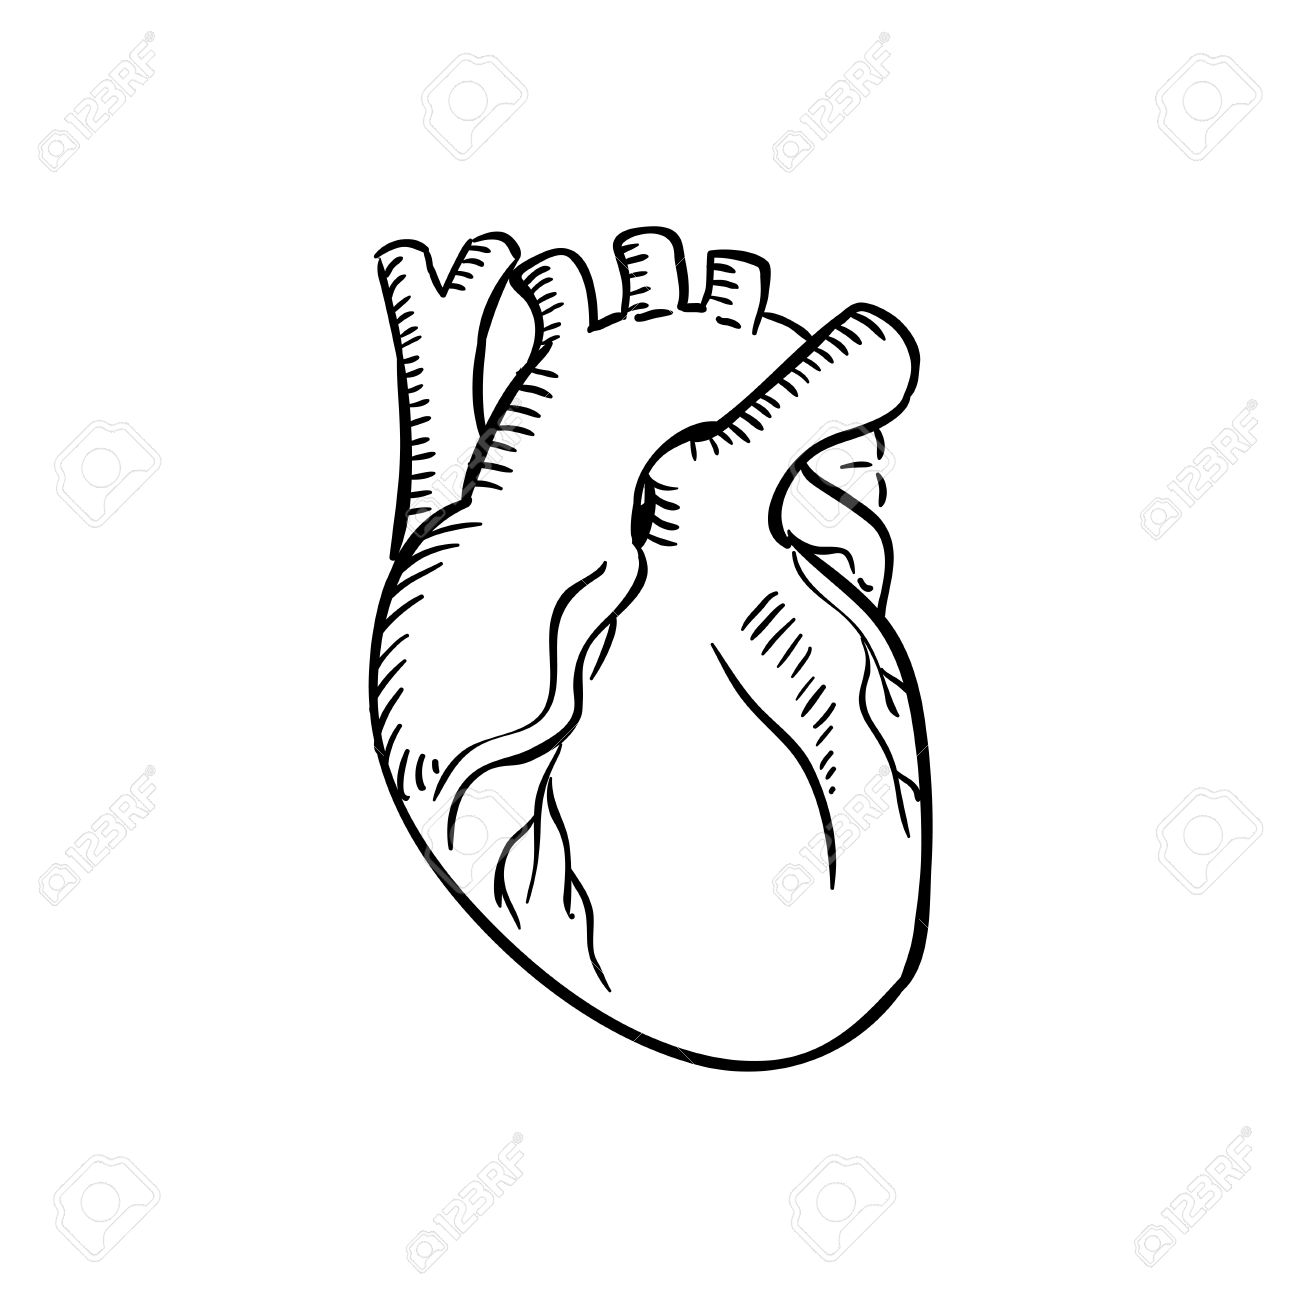 Human Heart Outline Sketch. Isolated Anatomical Detailed Organ ...